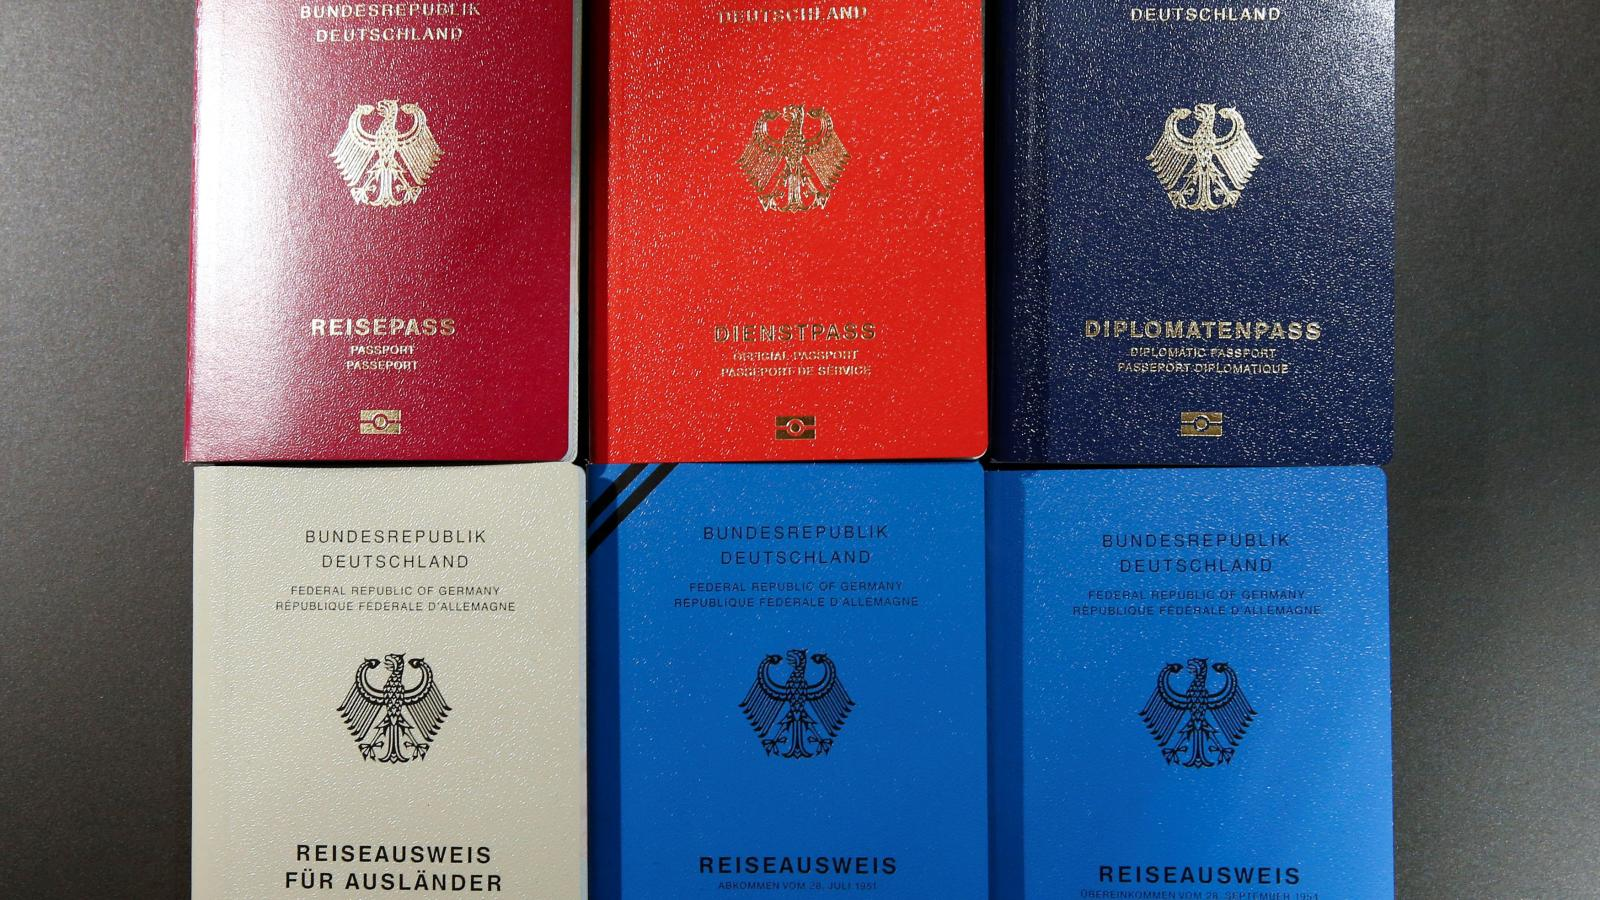 The world\'s most powerful passport in 2018: Germany\'s — Quartz